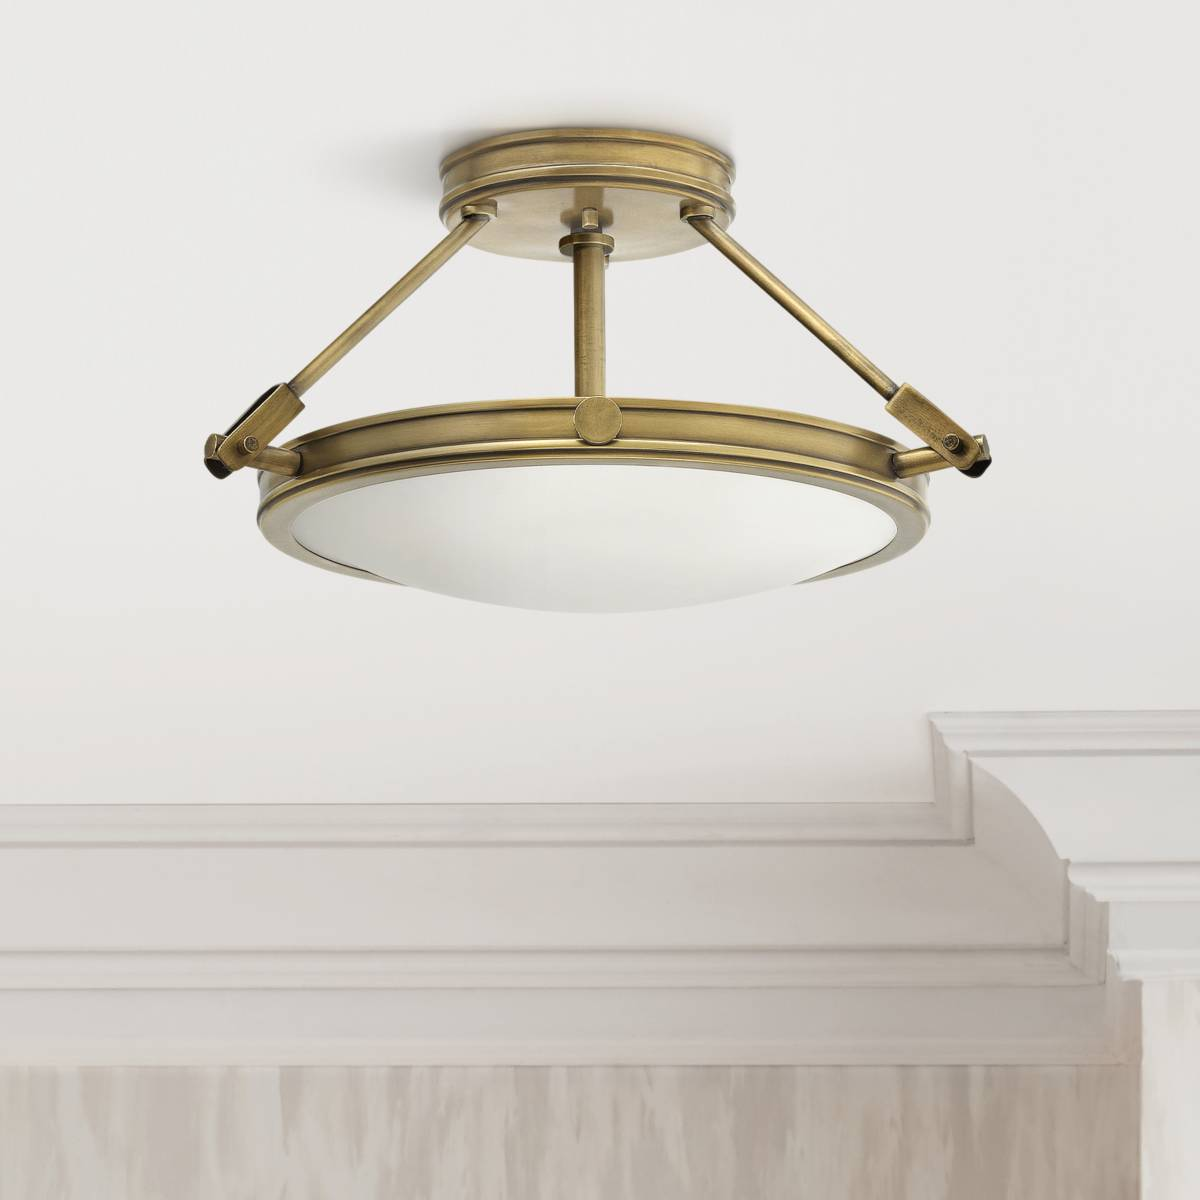 Lights Plus Decor: Close To Ceiling Light Fixtures